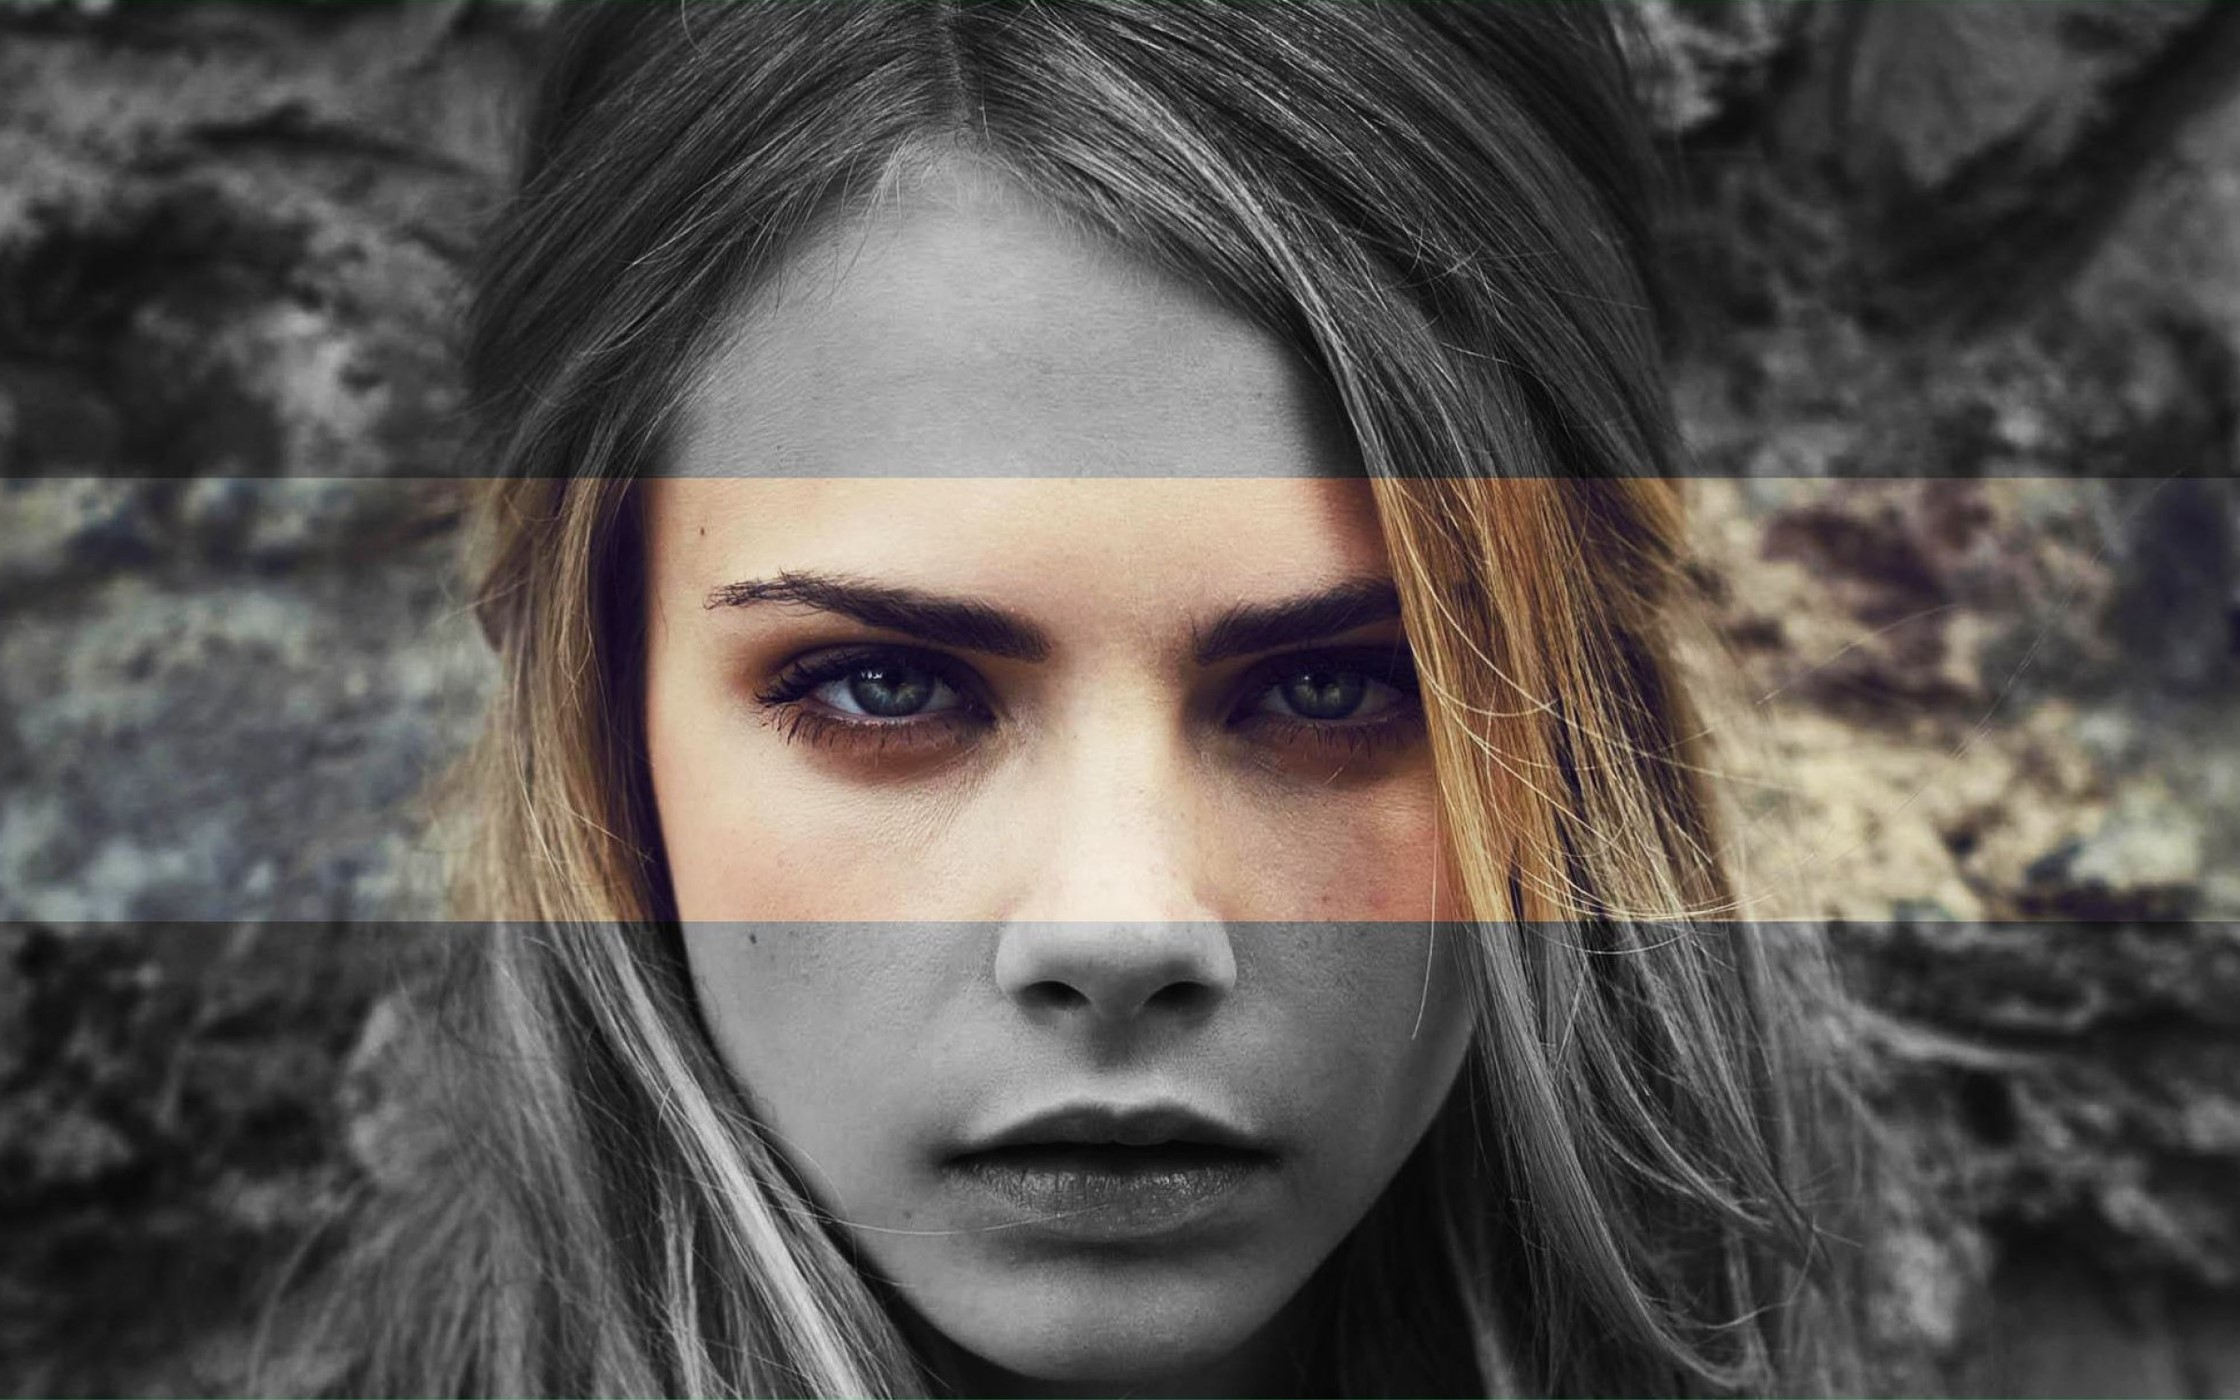 Wallpaper Cara Delevingne in black and white and in color